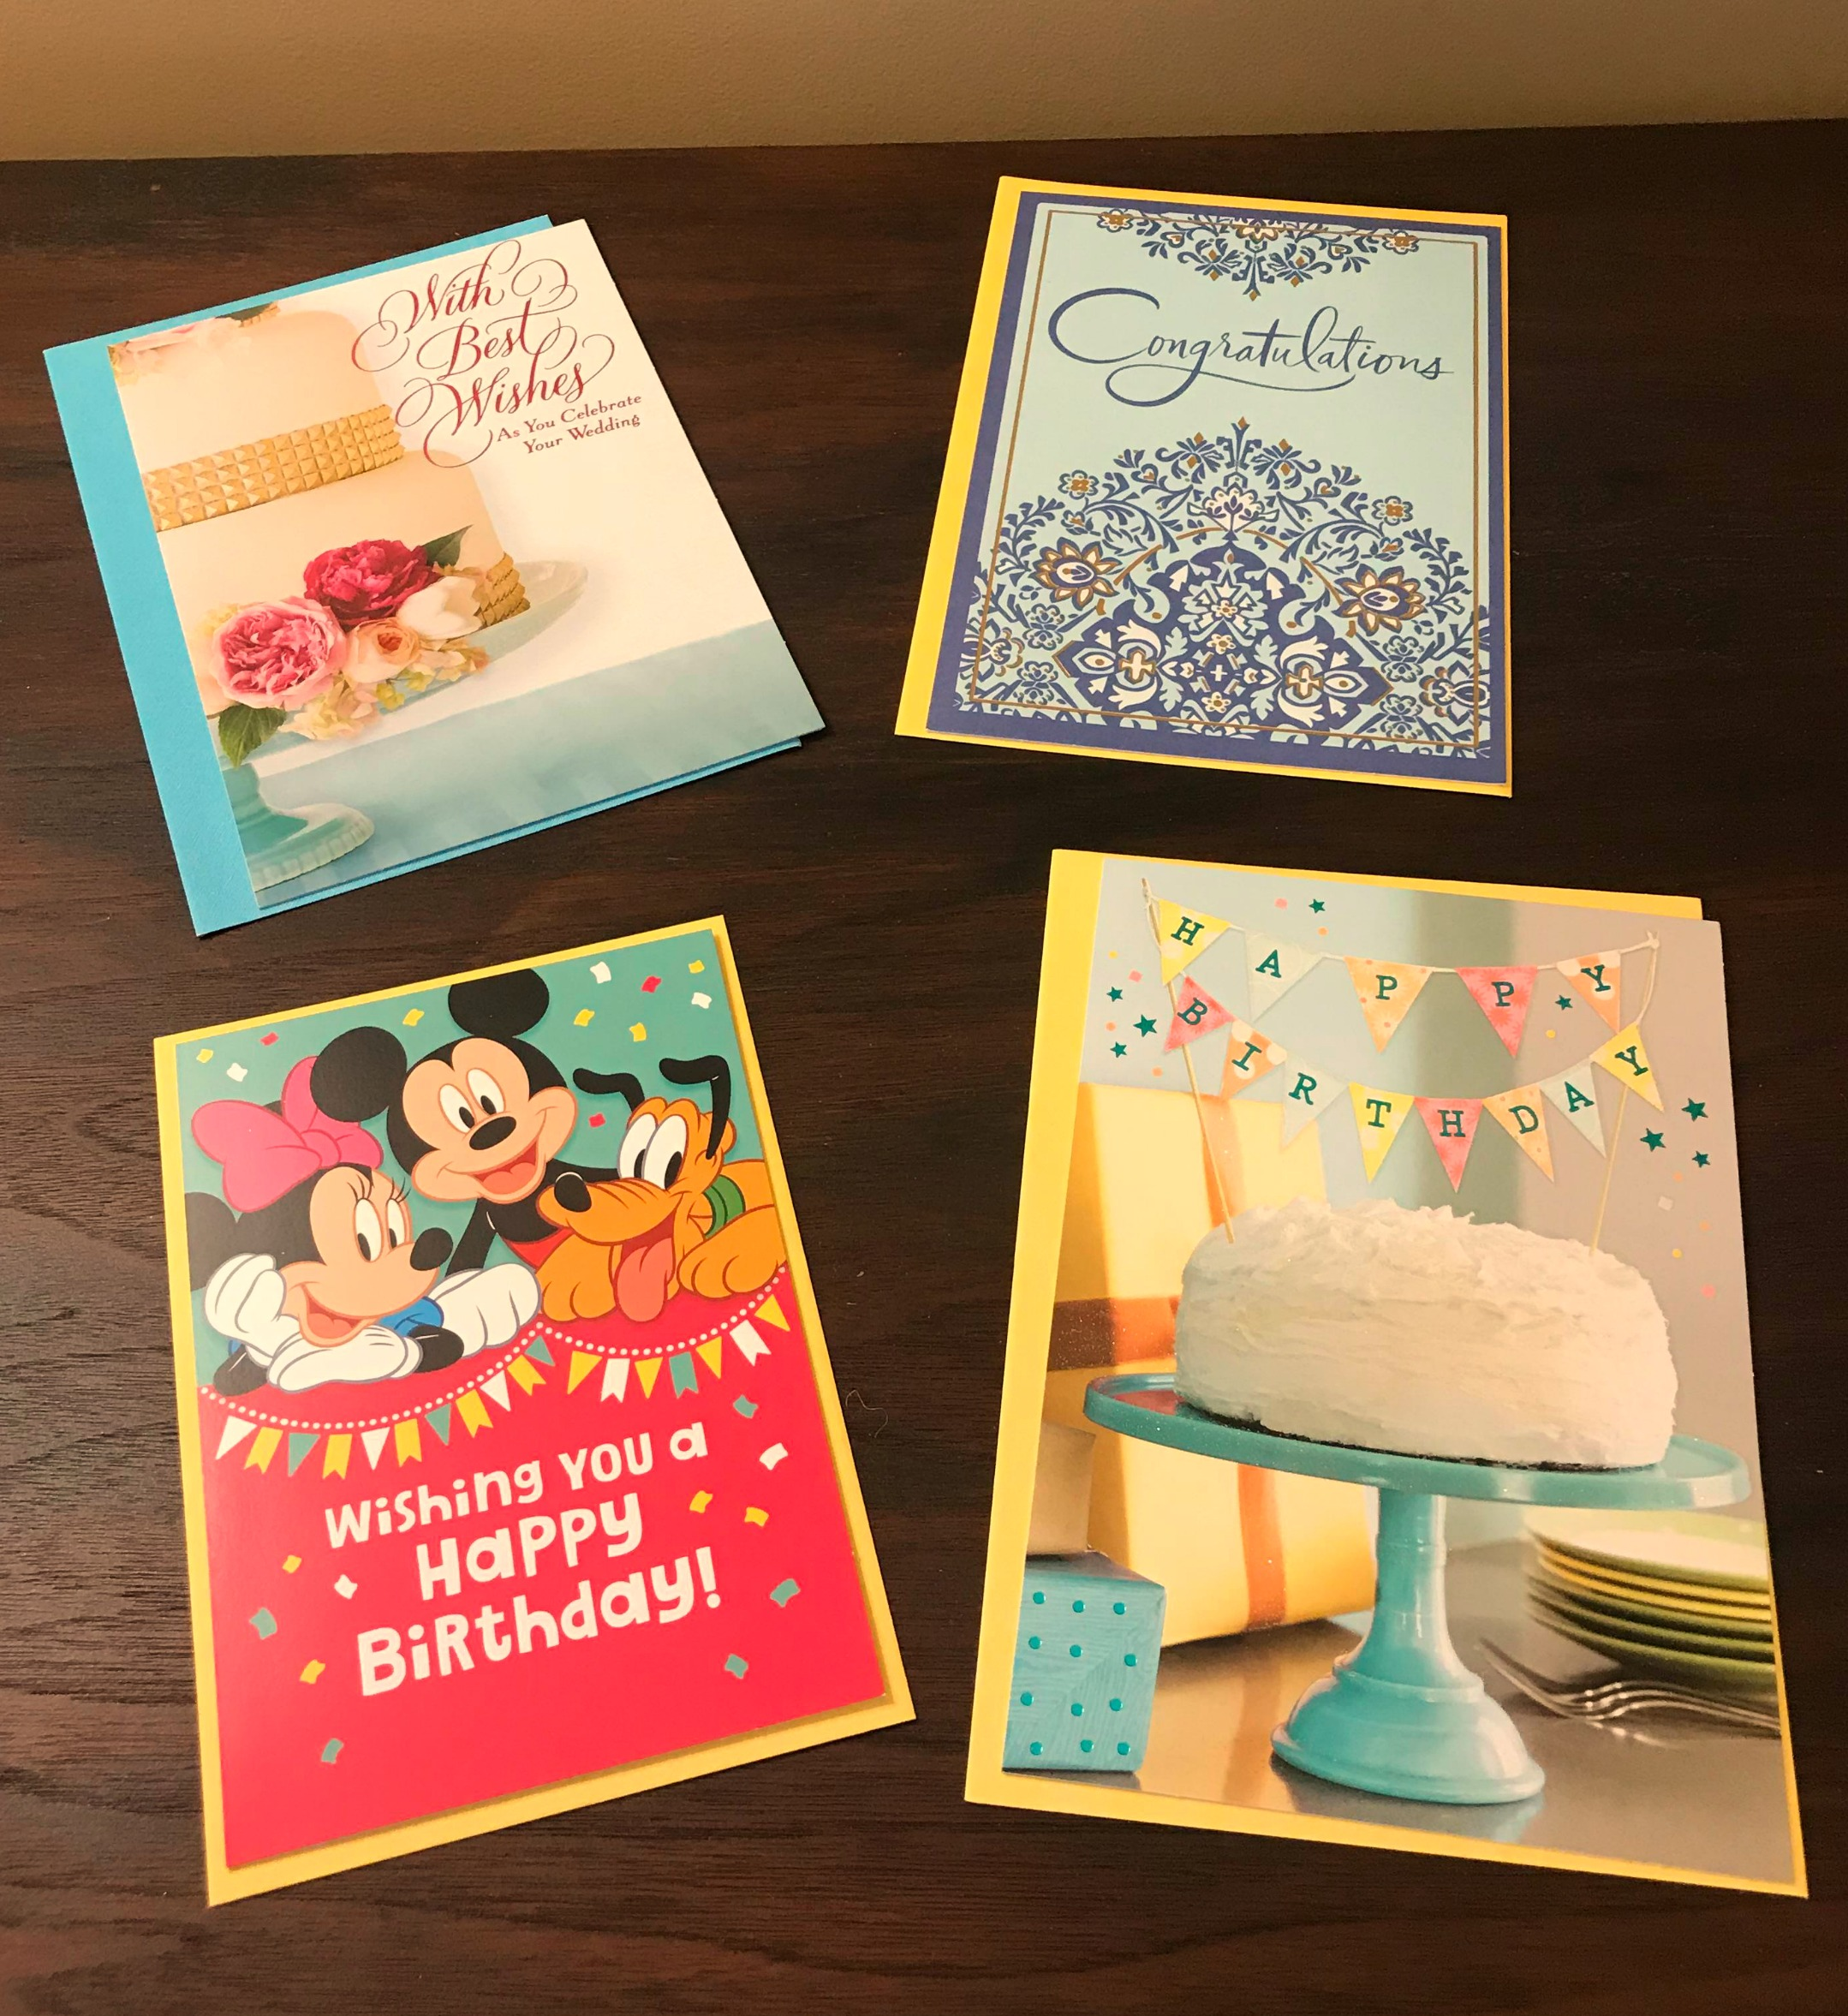 The Best 1 Greeting Cards From The Dollar Tree Busy Lifestyle Gal